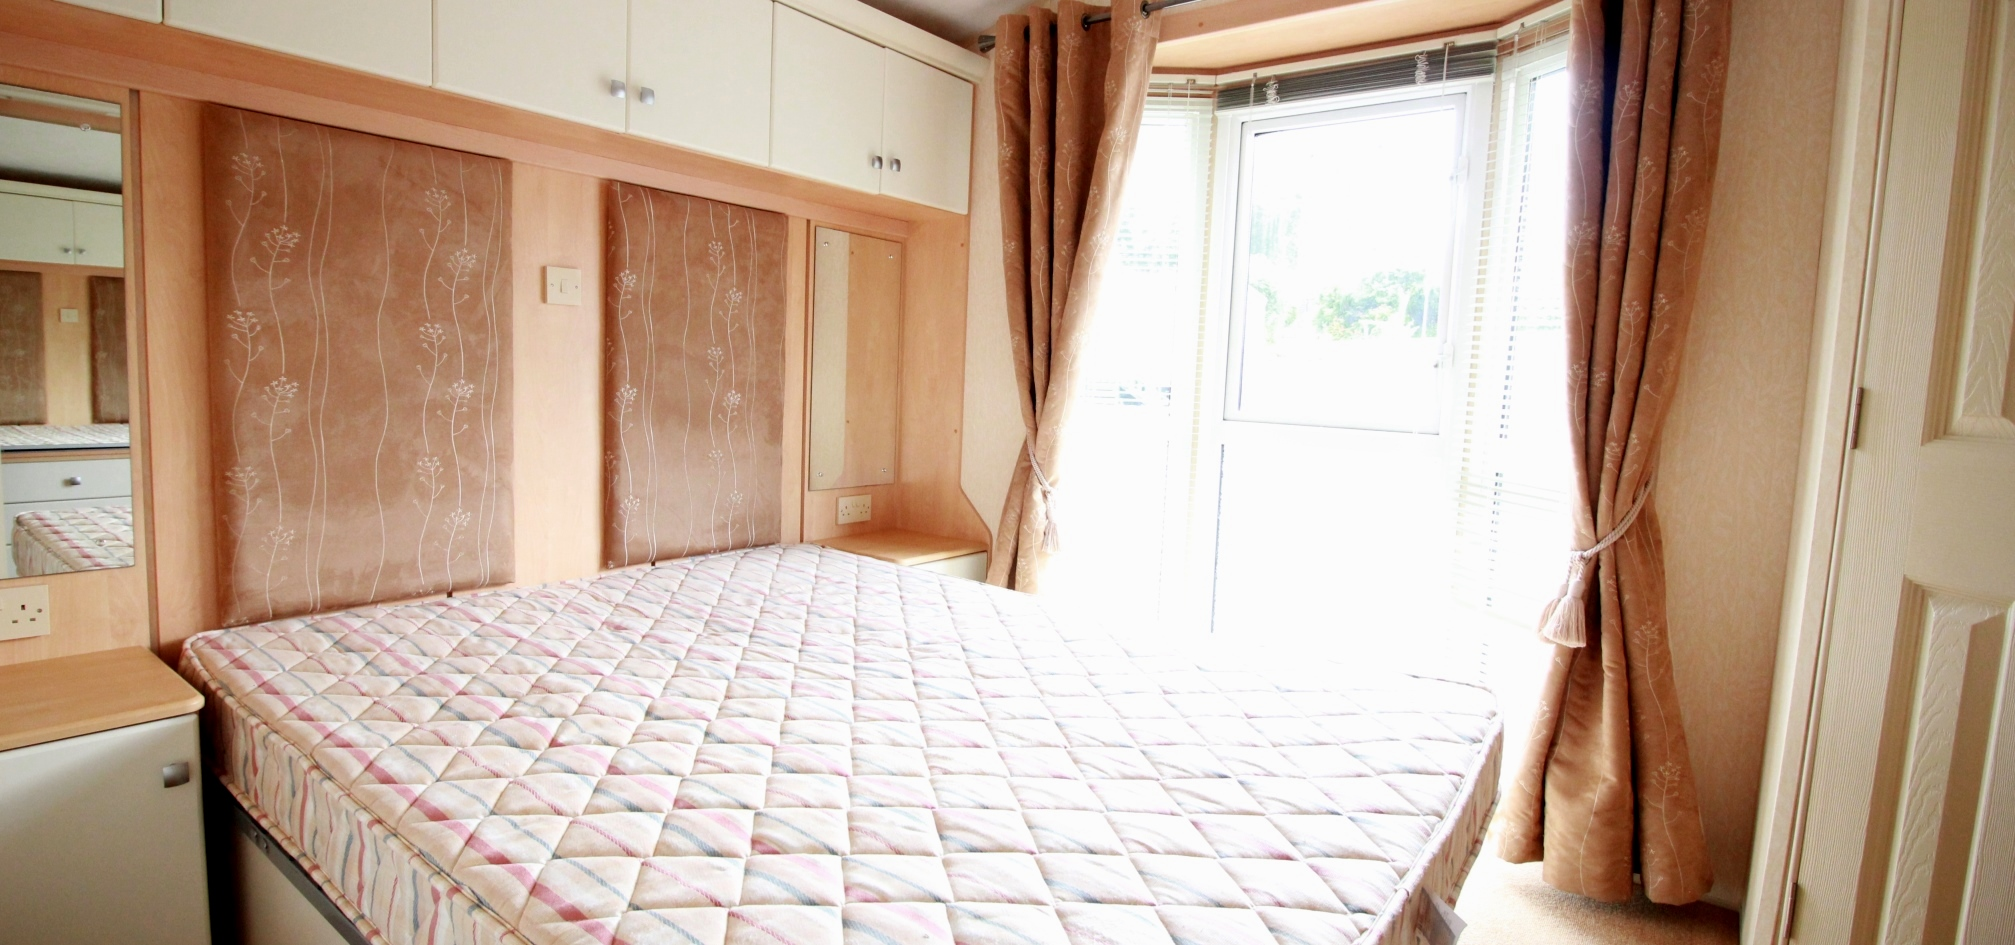 bedroom in a holiday home with a double bed and large windows